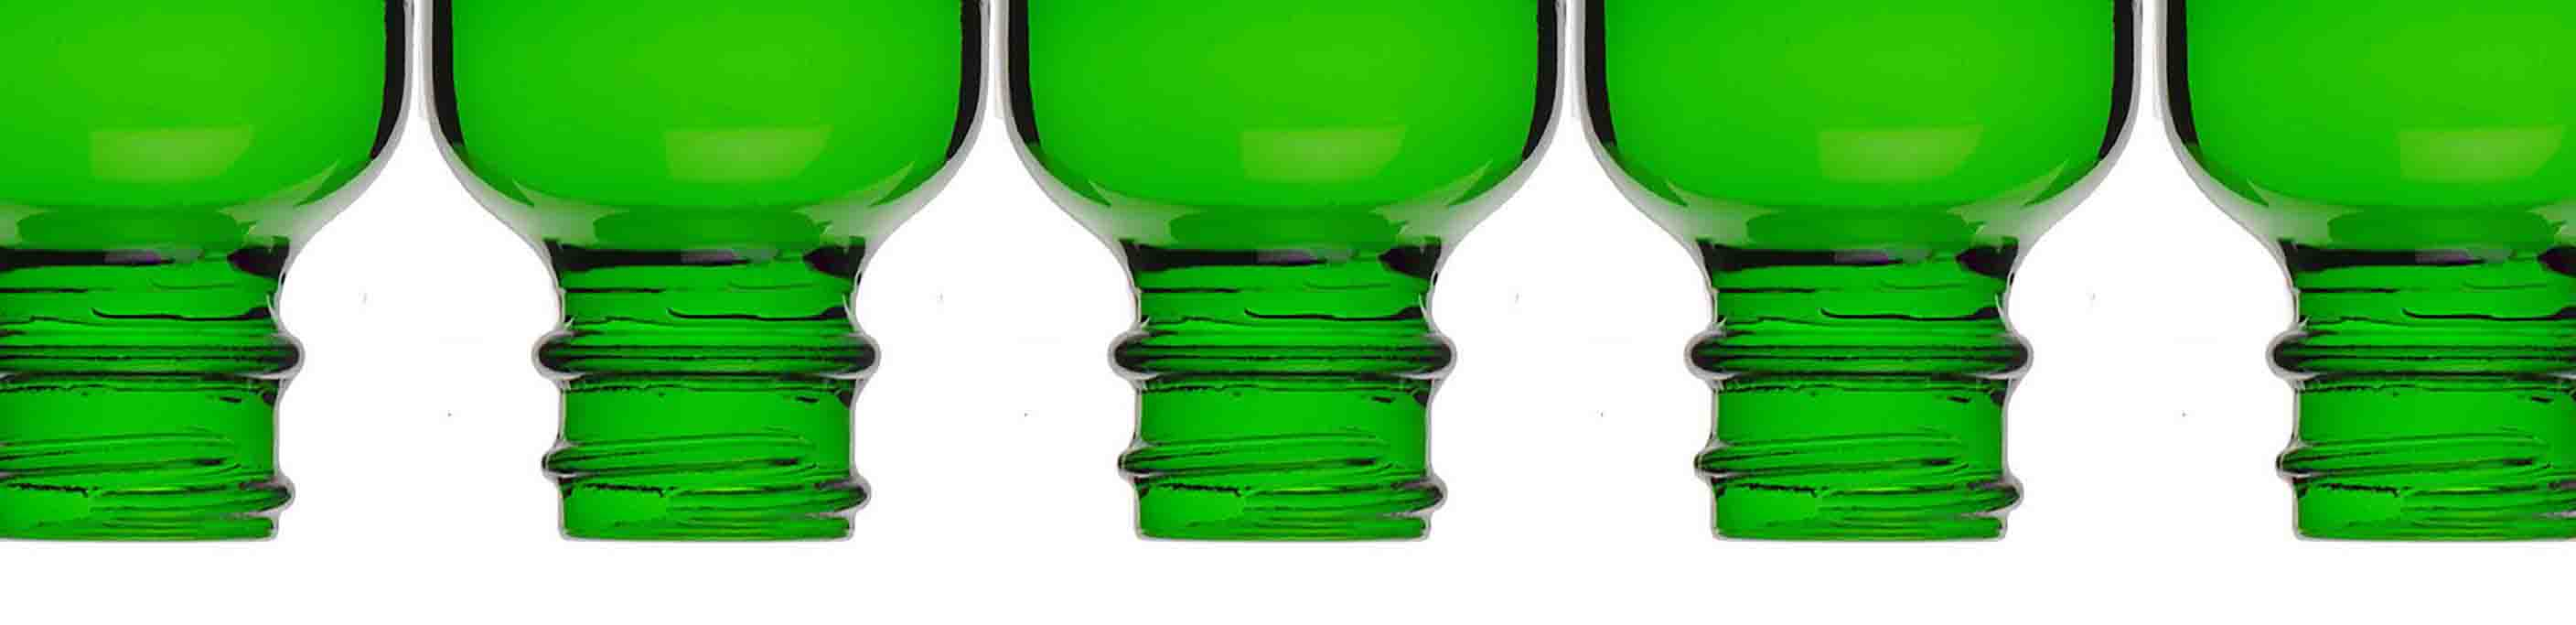 Green Glass Bottles for Essential Oils